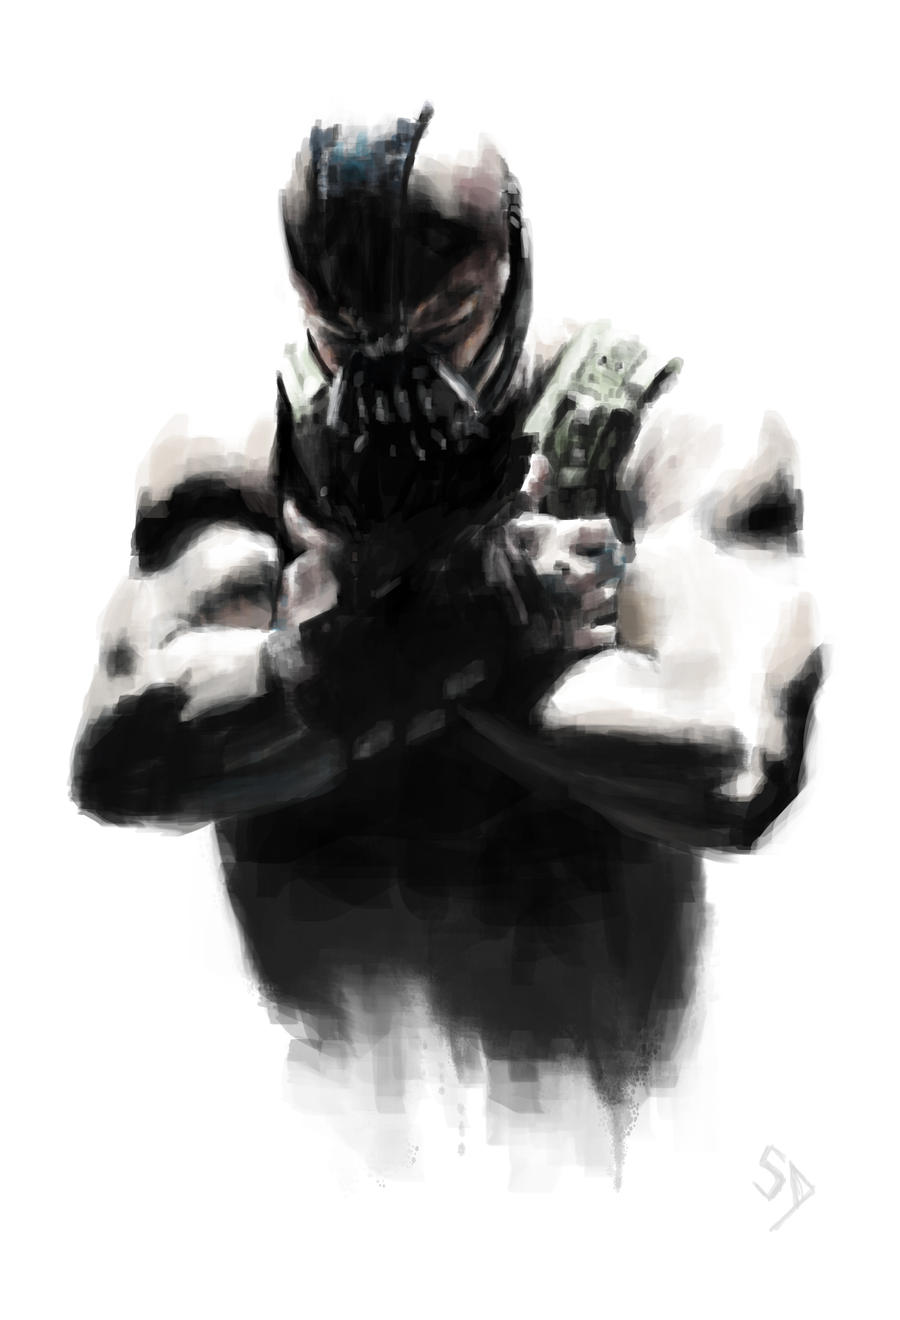 Gothams reckoning by sdewey7